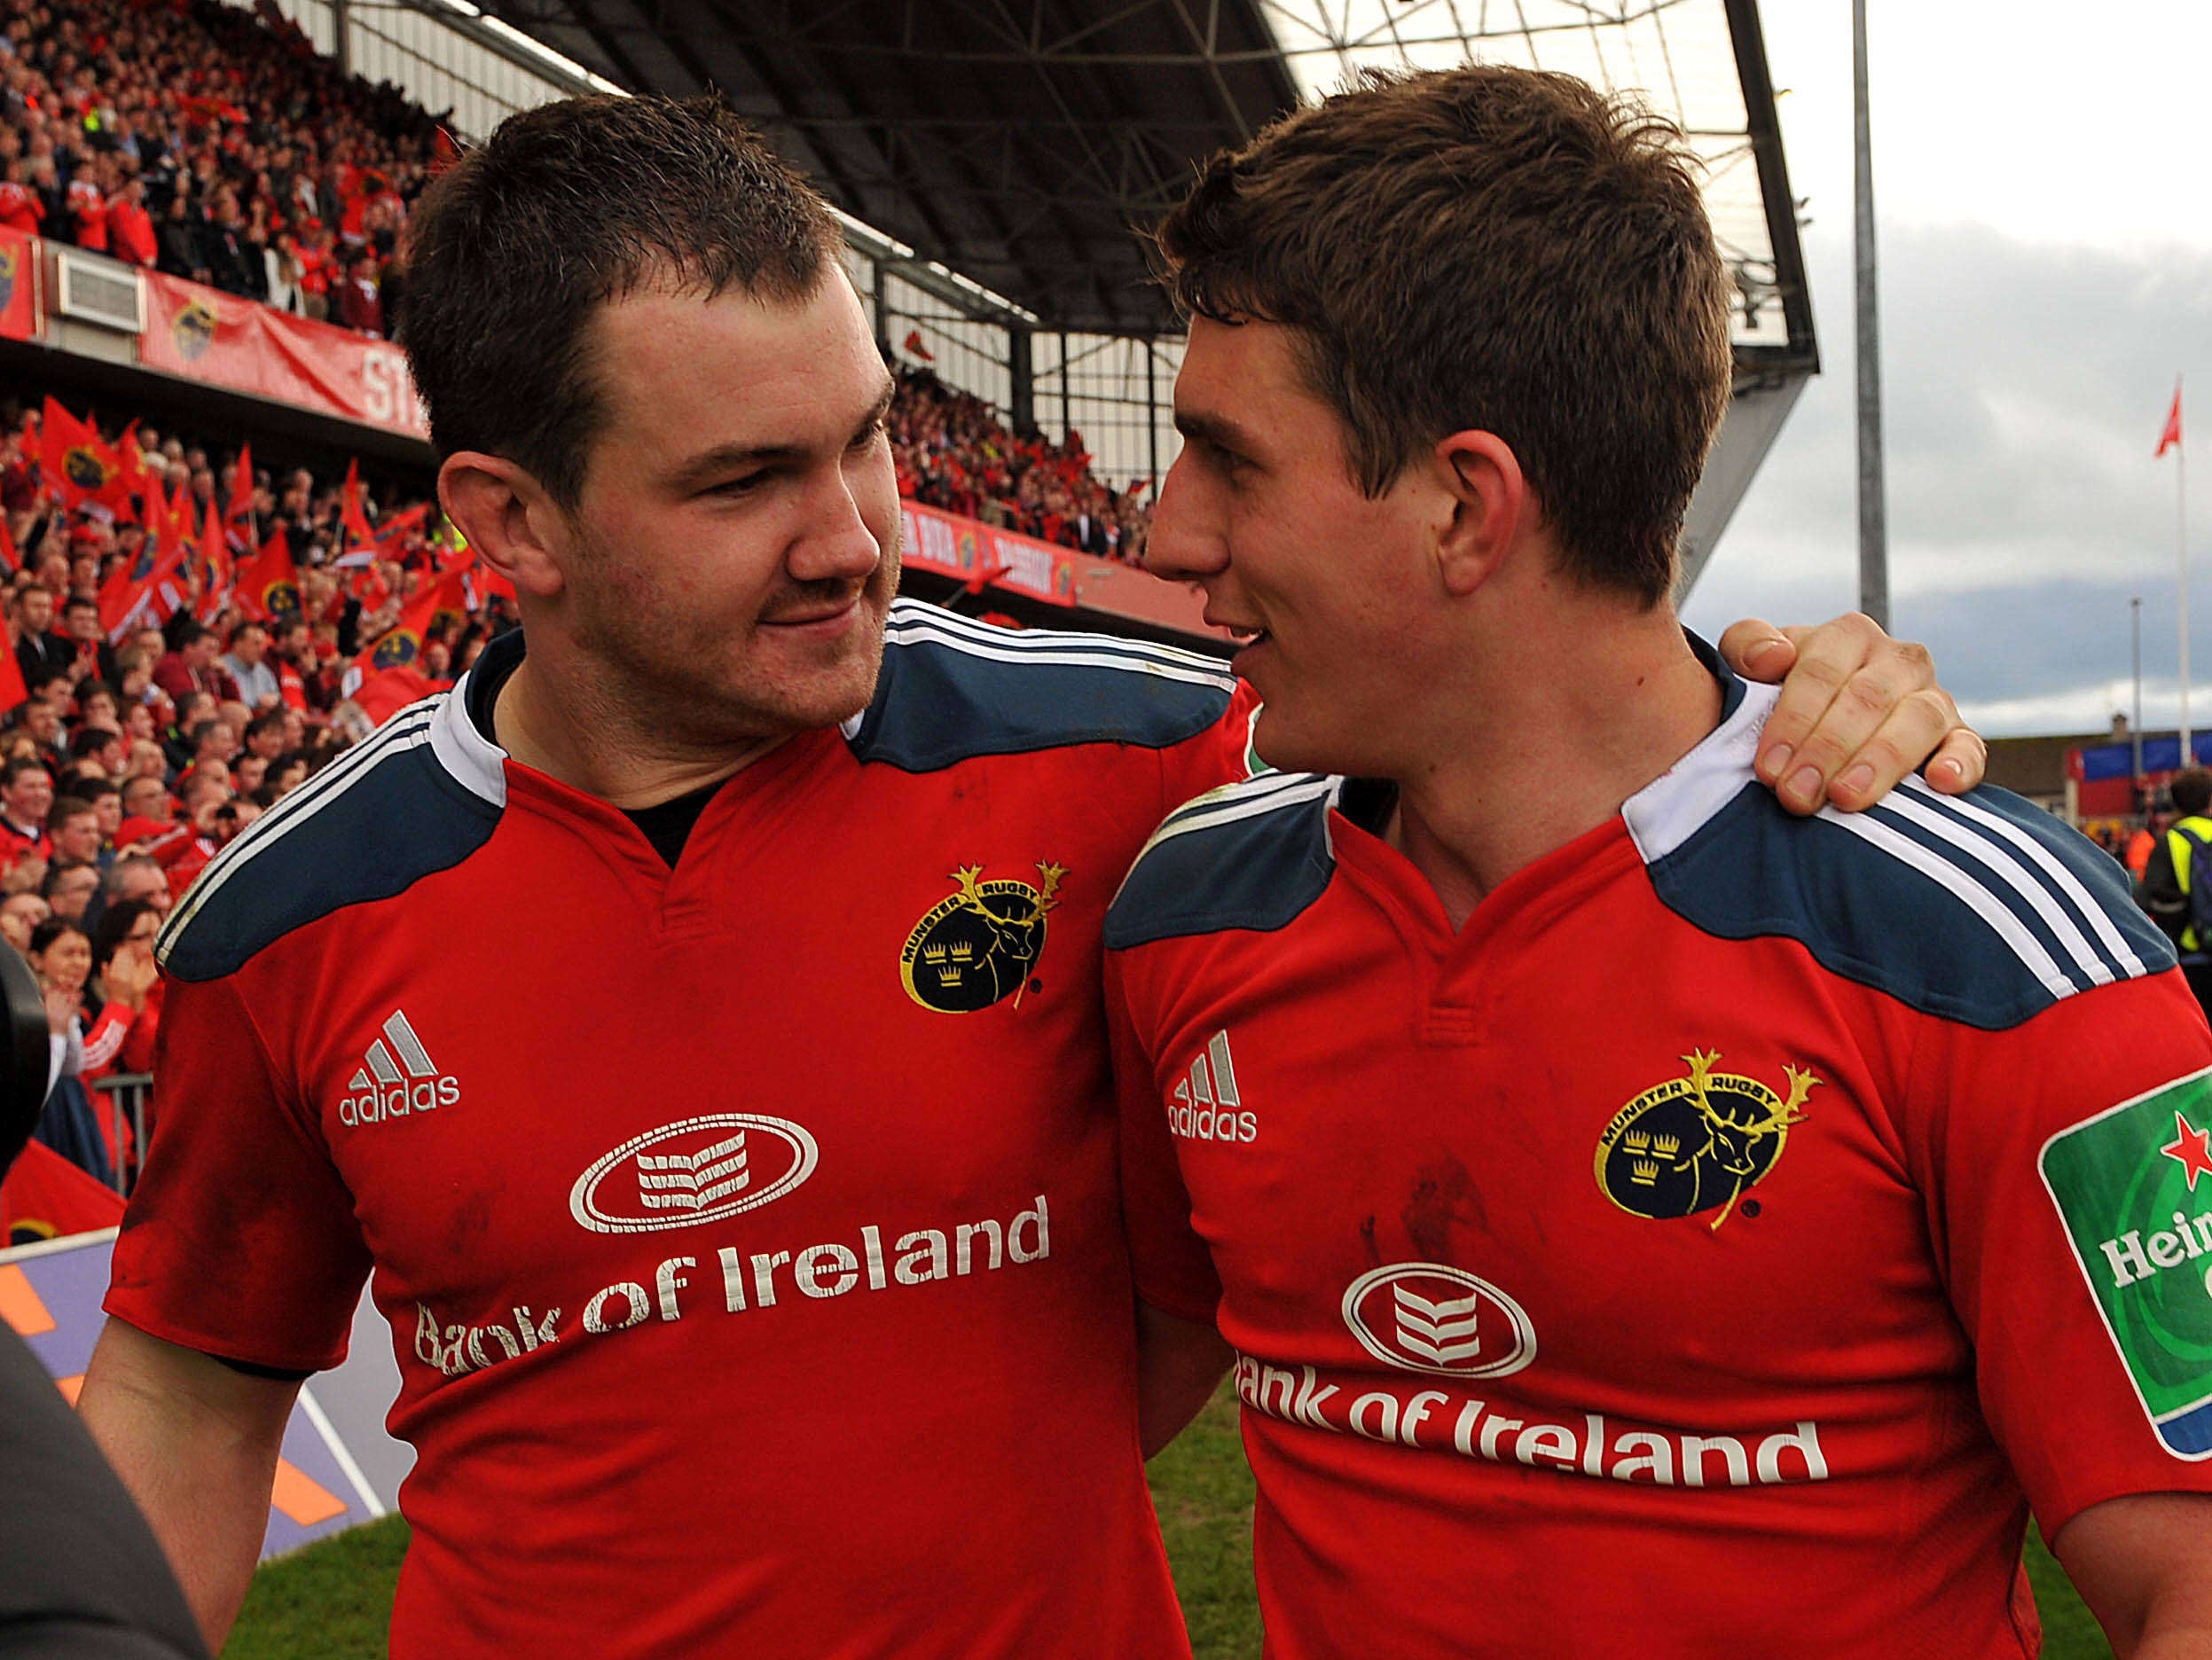 arley and Keatley celebrate win over Toulouse April 2014